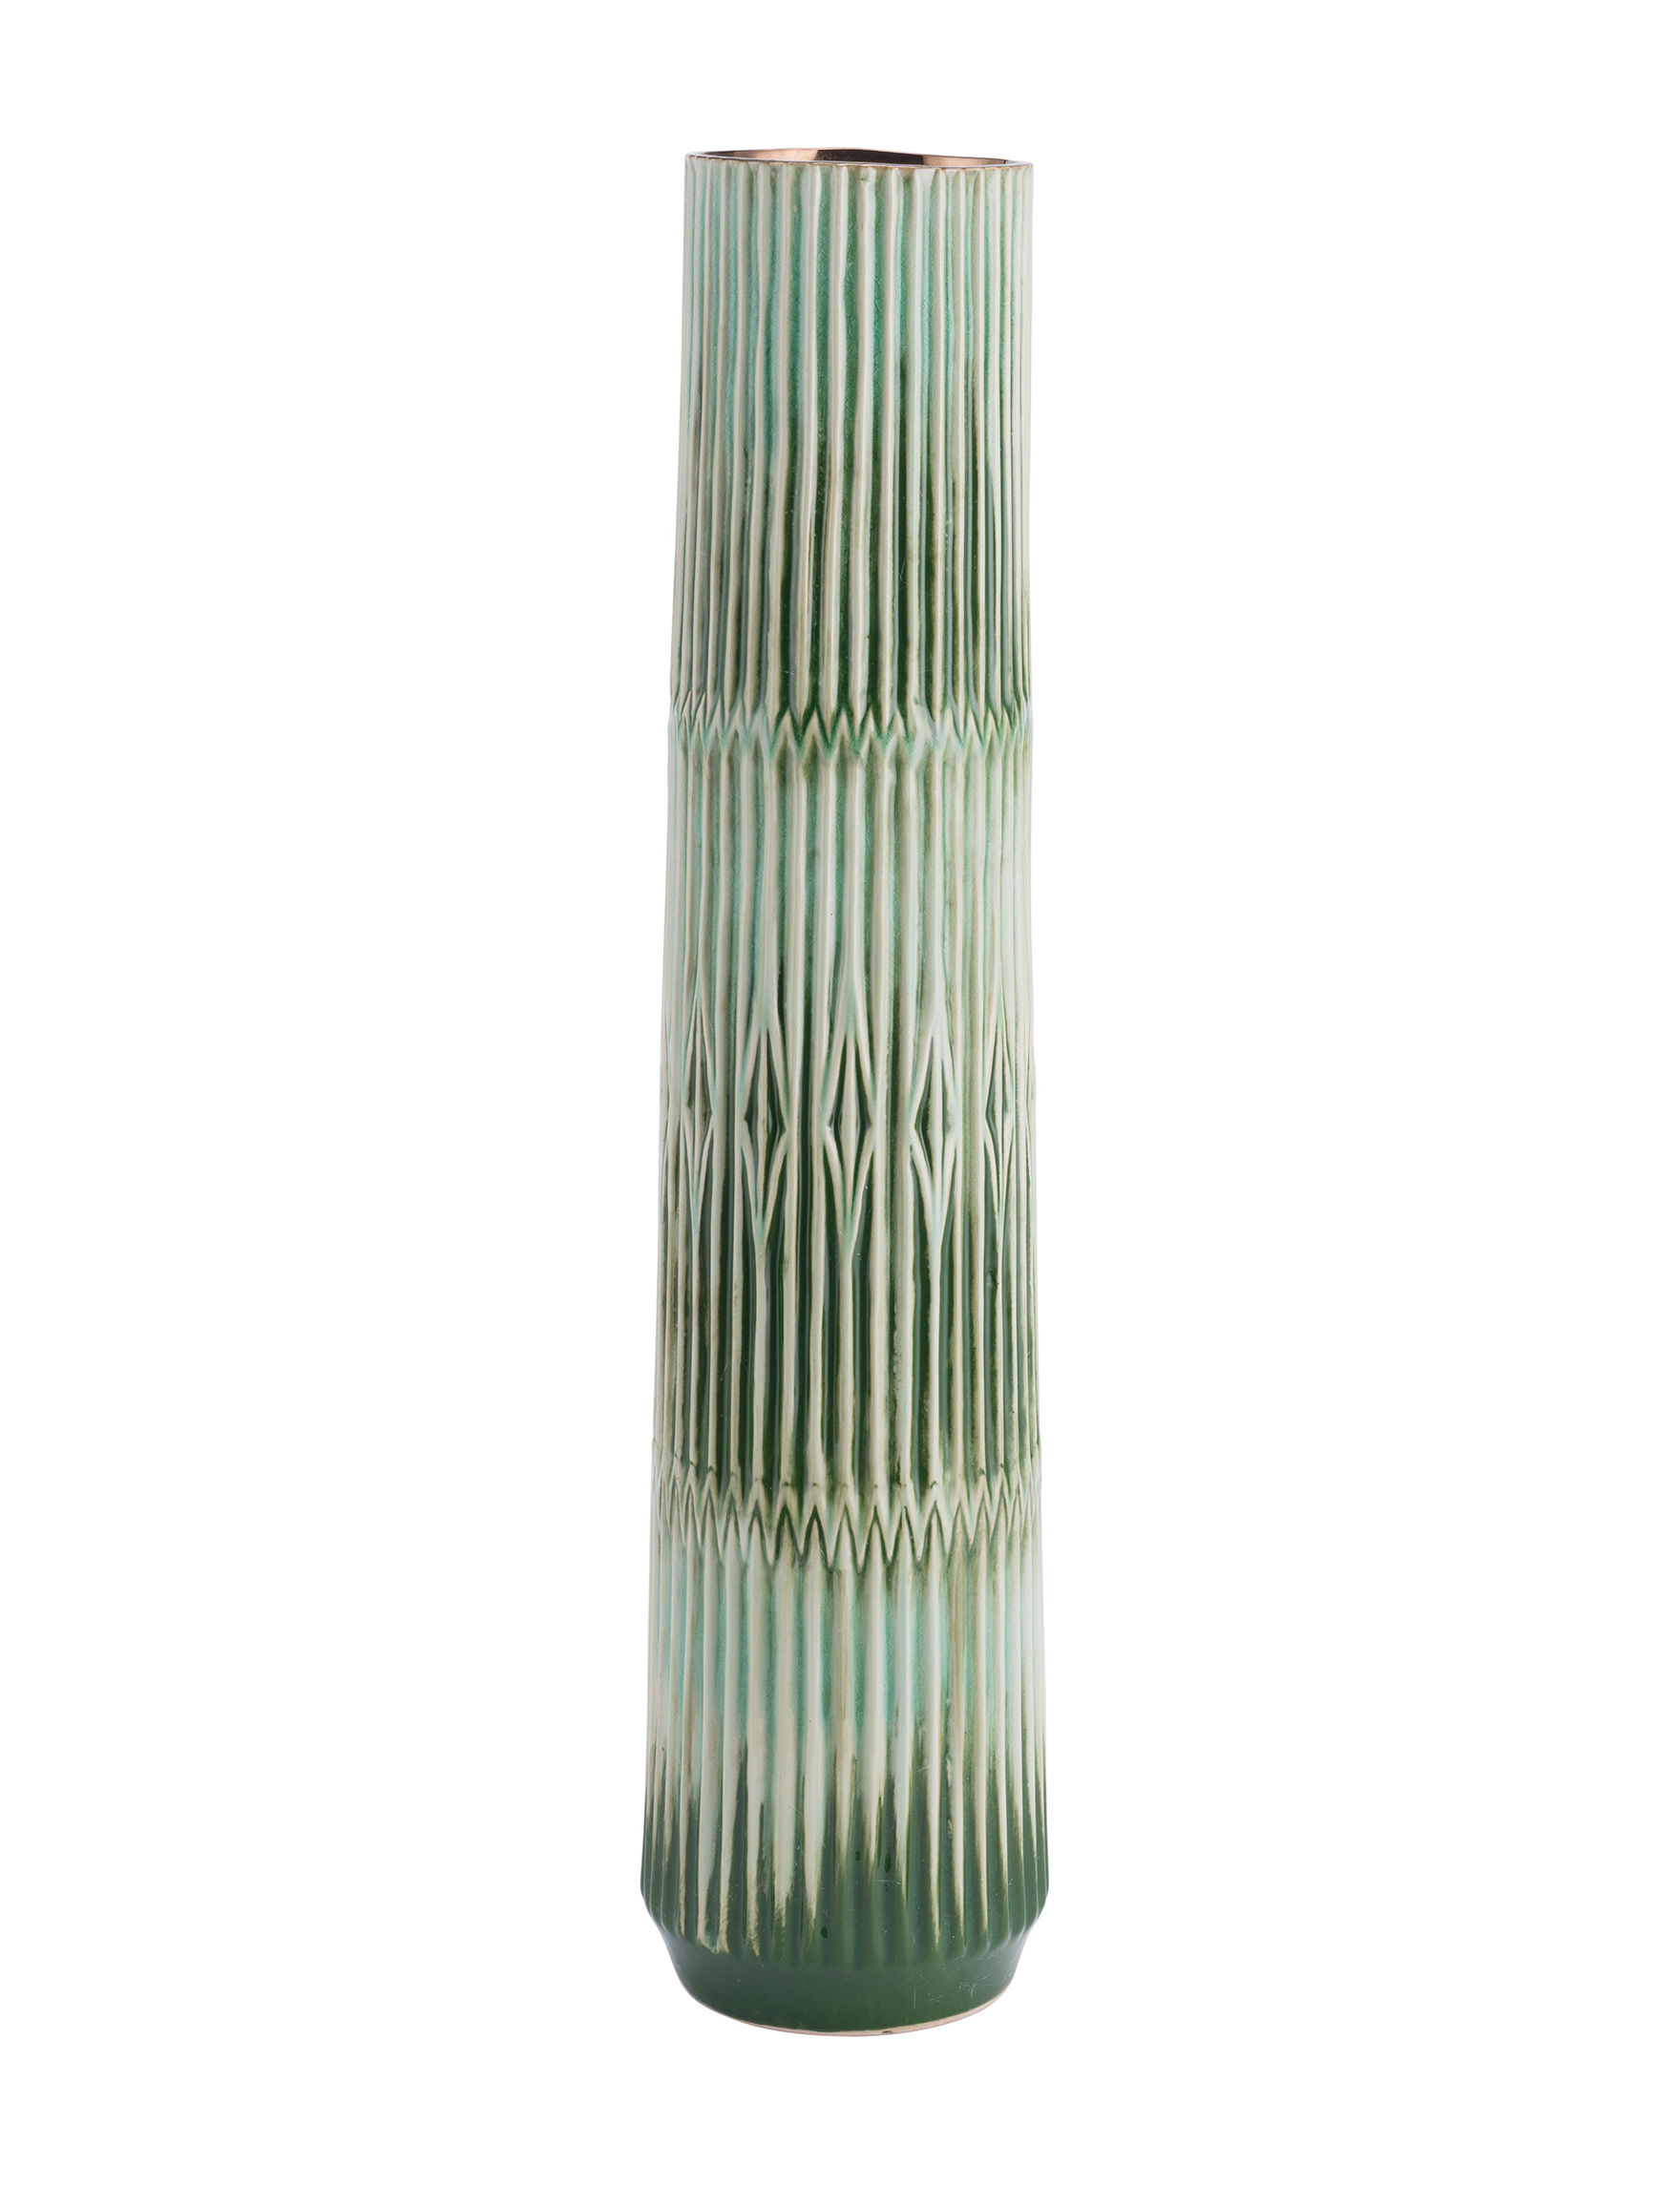 Zuo Modern Green Vases & Decorative Bowls Home Accents